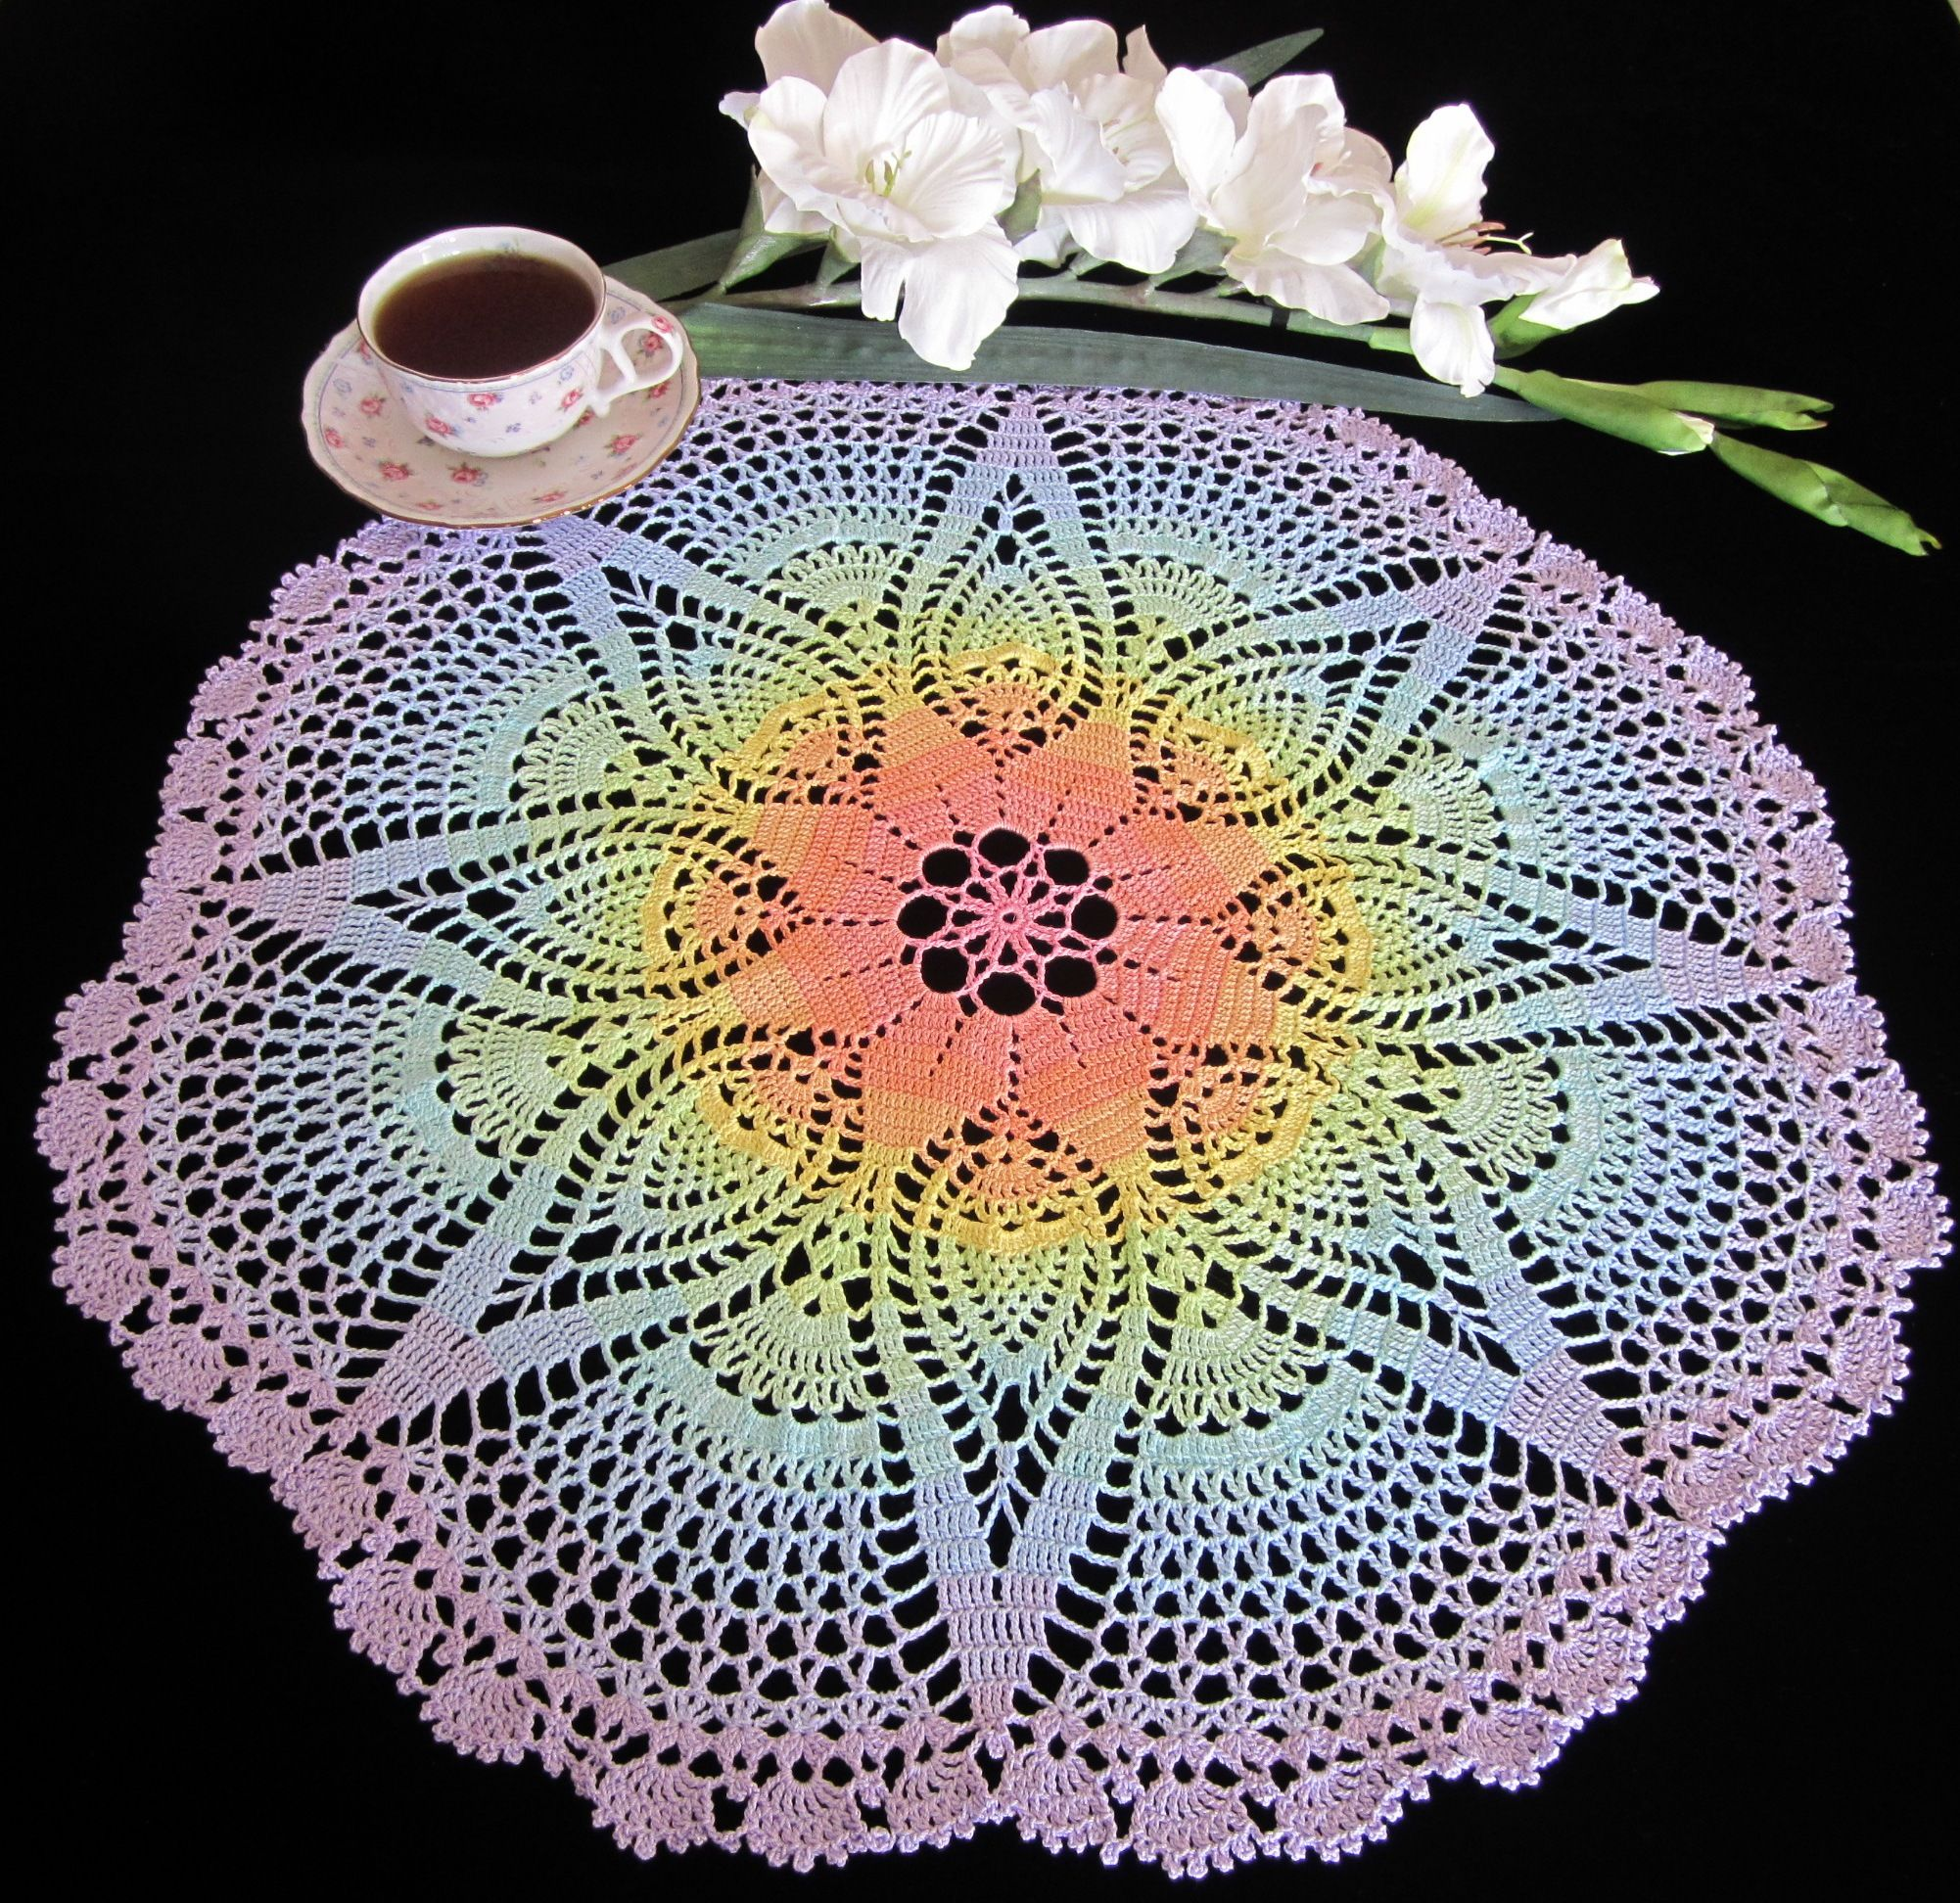 Rainbow crocheted doily made using hand-dyed thread in a variety of colors made by Pamela Humphreys (Raine59)